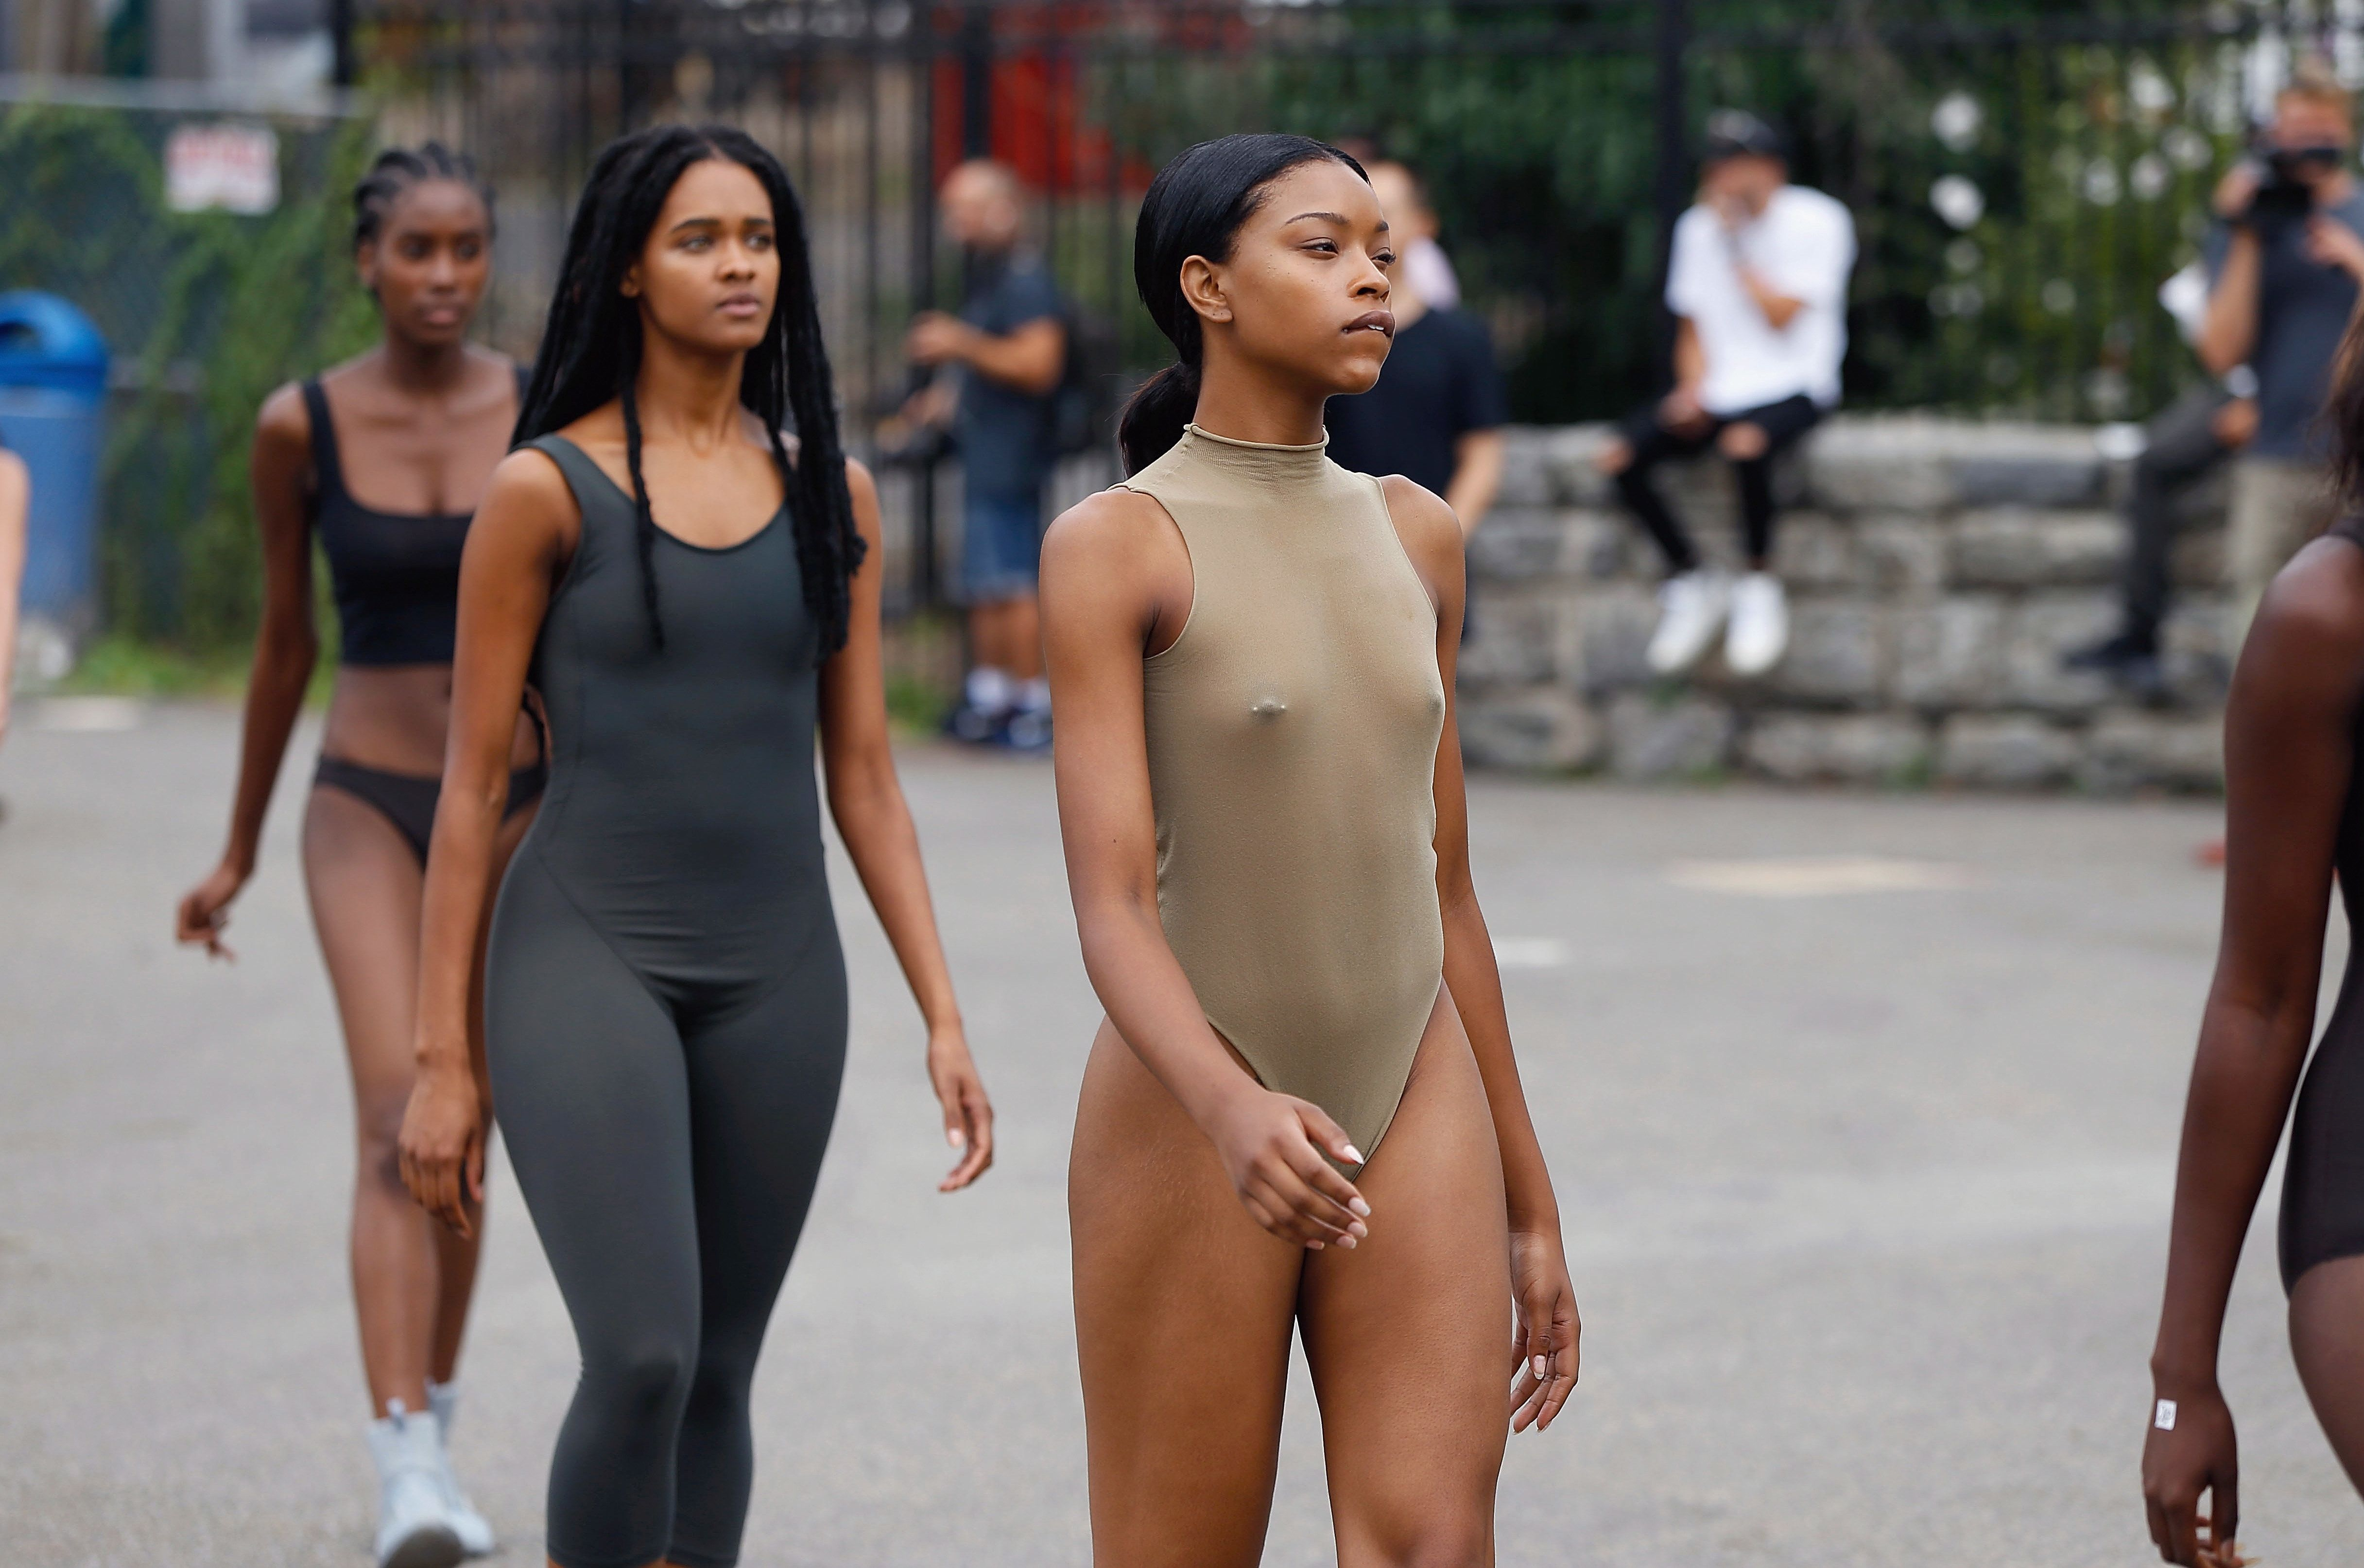 NEW YORK, NY - SEPTEMBER 07:  Models are seen during a walk through at the Yeezy Season 4  fashion show on September 2016 New York Fashion Week: The Shows at Four Freedoms Park on September 7, 2016 in New York City.  (Photo by John Lamparski/WireImage)